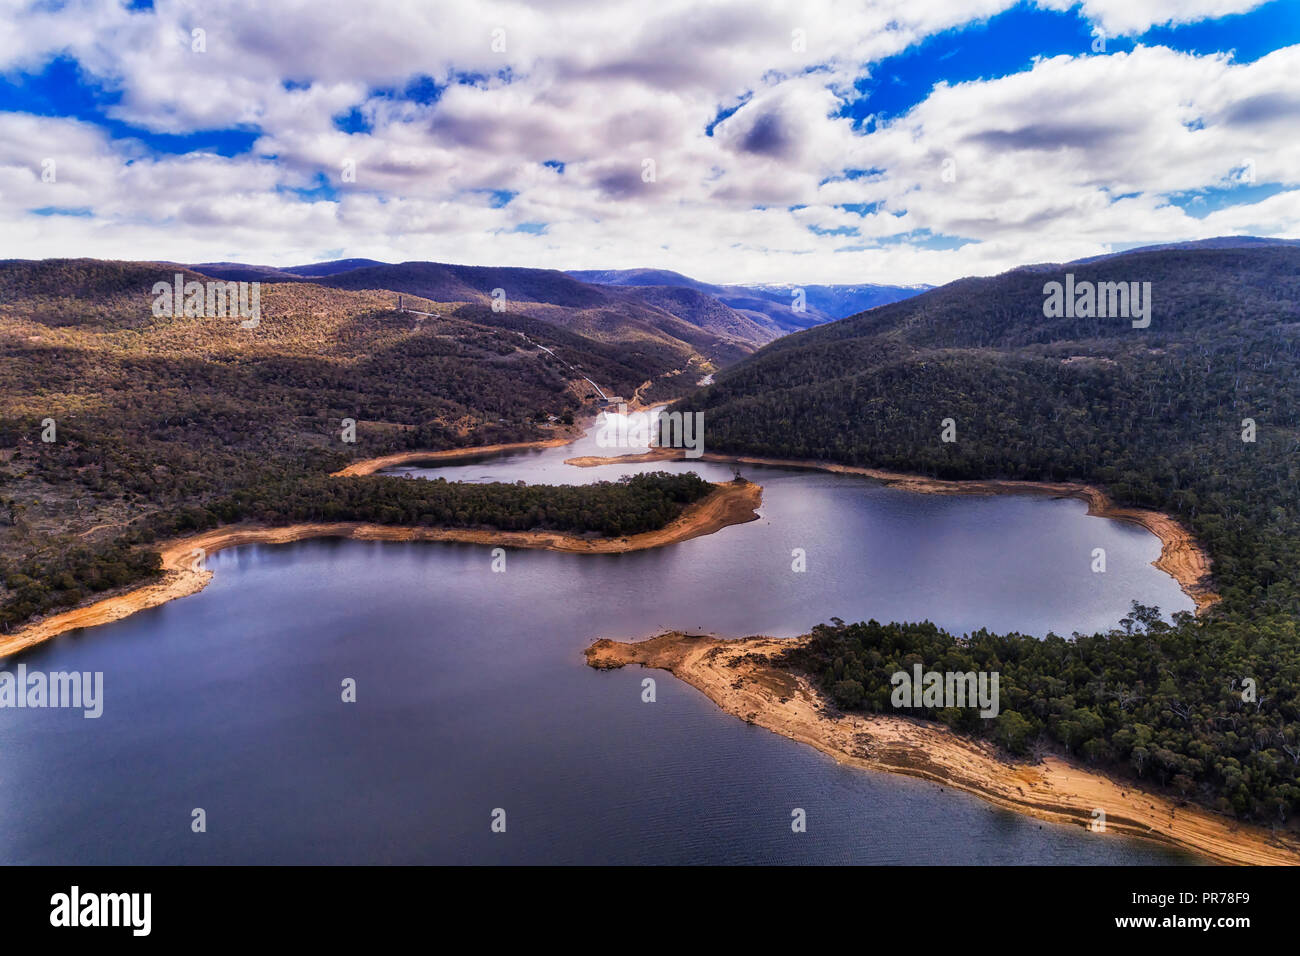 Delta of SNowy river entering Jindabyne lake fresh water reservoir formed by Jindabyne dam high in Snowy Mountains of Australia. - Stock Image